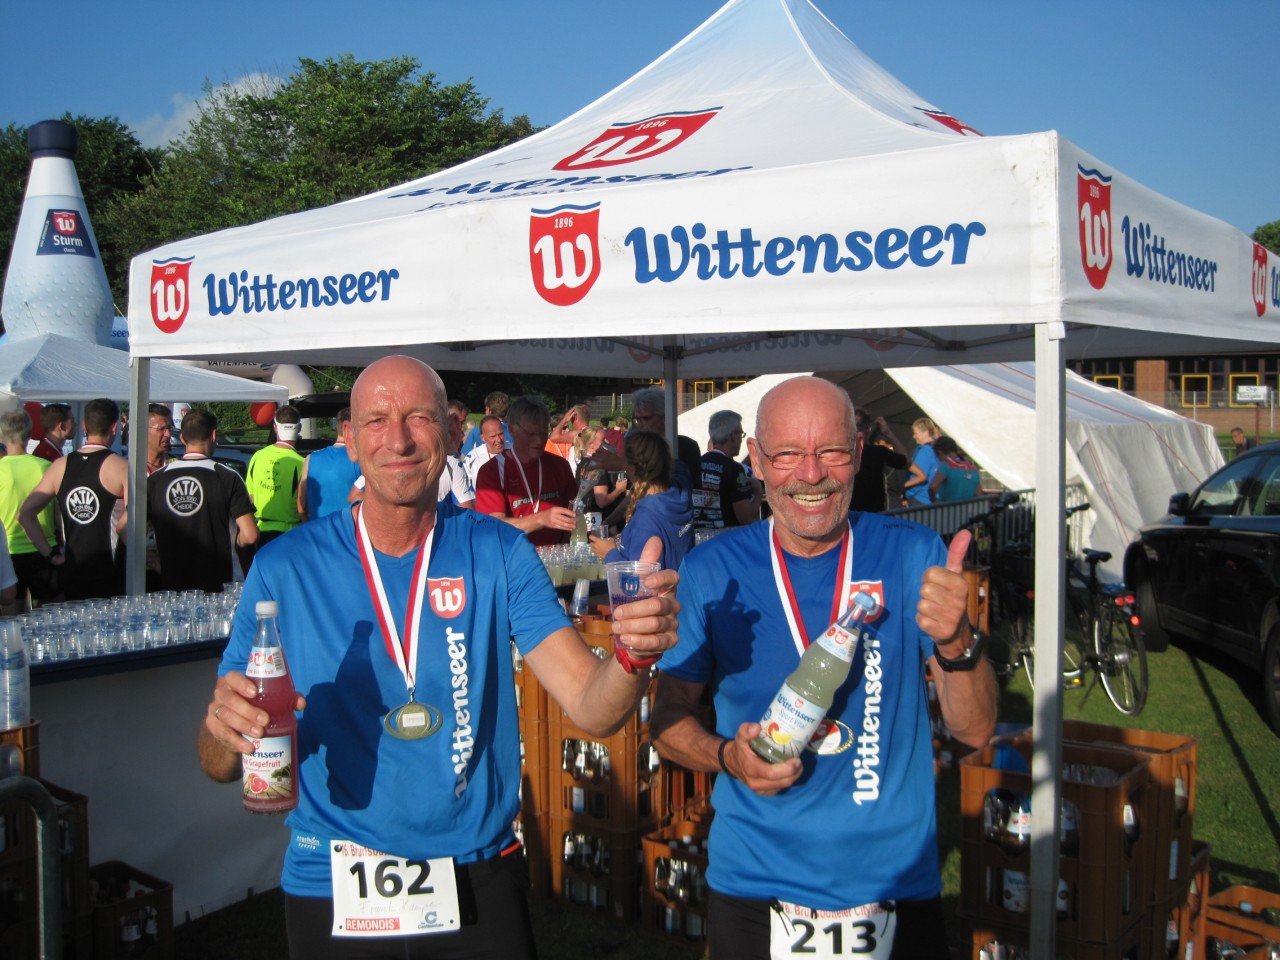 16. Brunsbüttel City Lauf